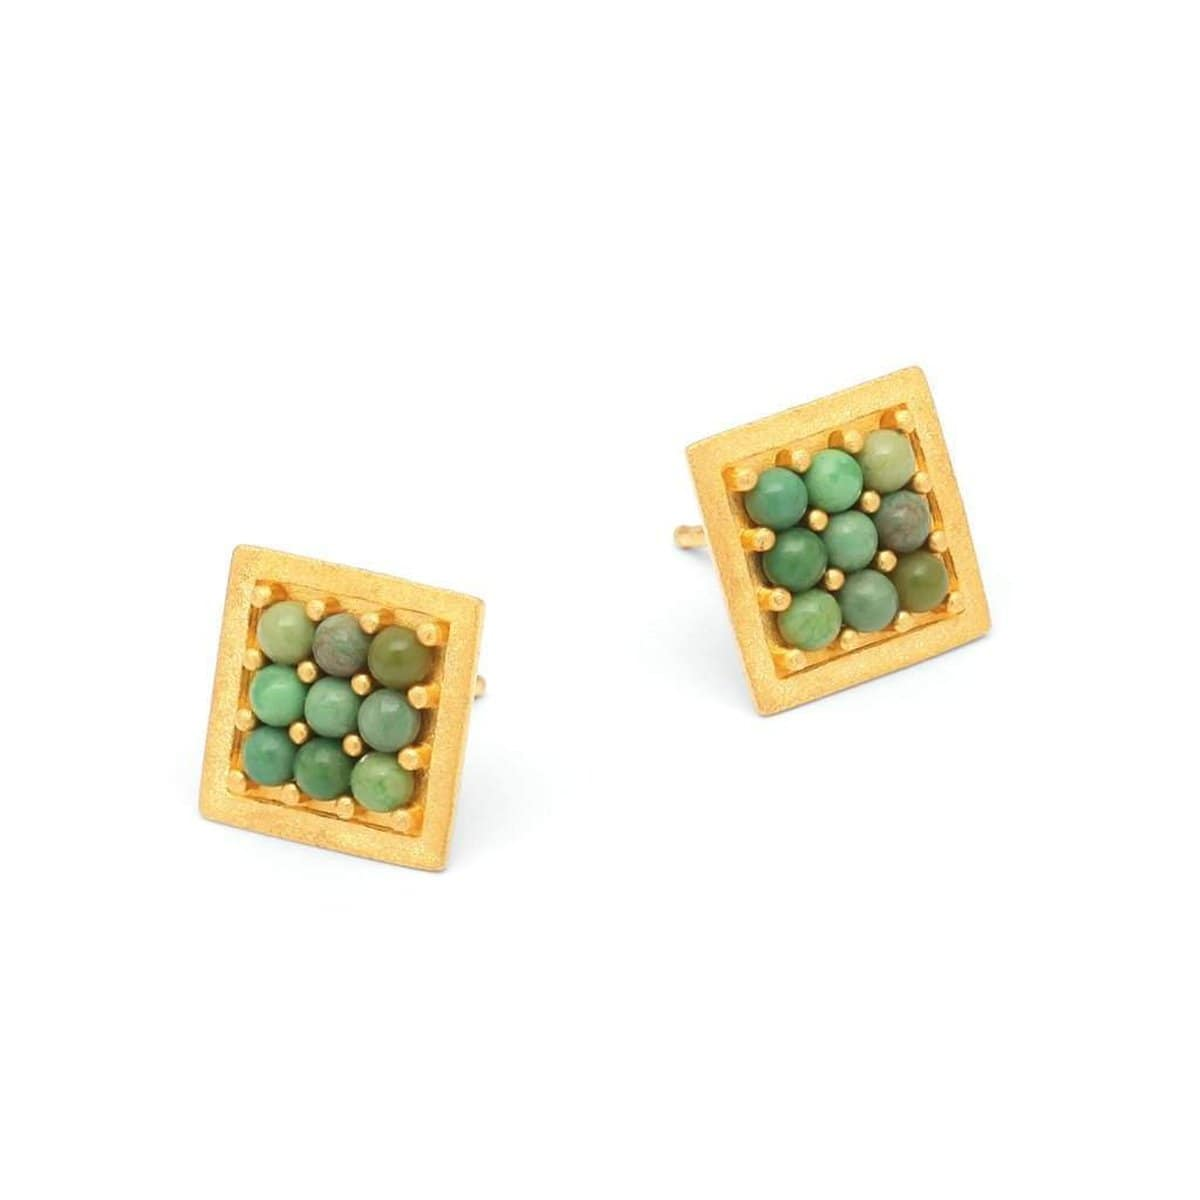 Pacu Green Turquoise Pin Earrings - 19930356-Bernd Wolf-Renee Taylor Gallery